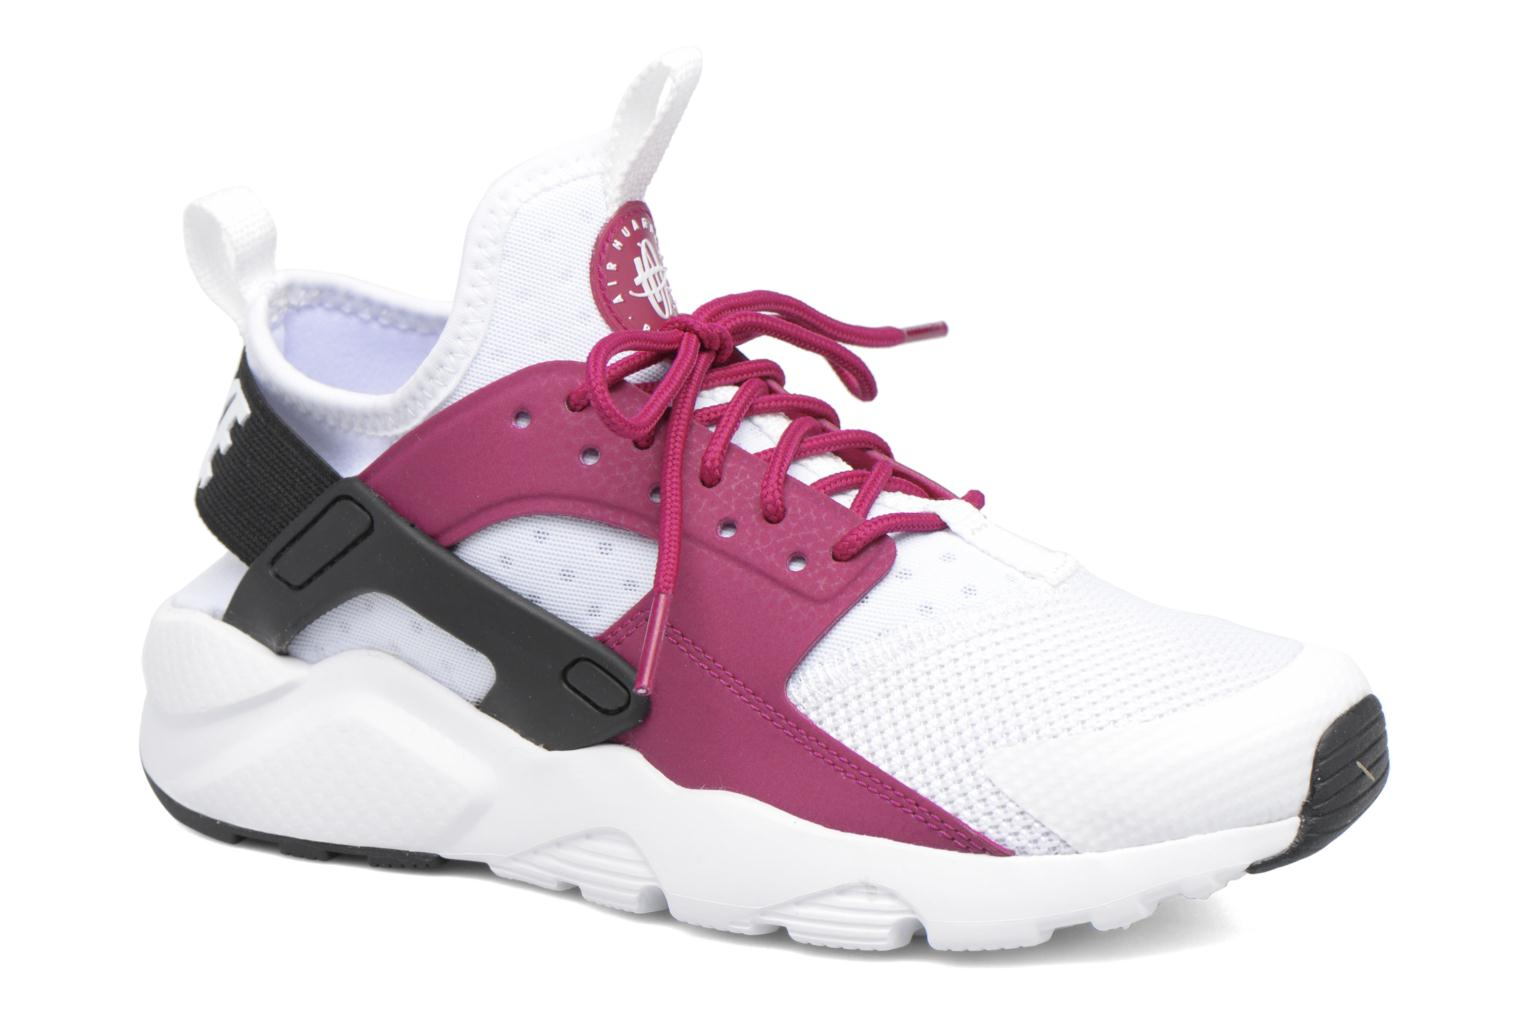 Nike Air Huarache Run Ultra Gs White/Sport Fuchsia-Black-White